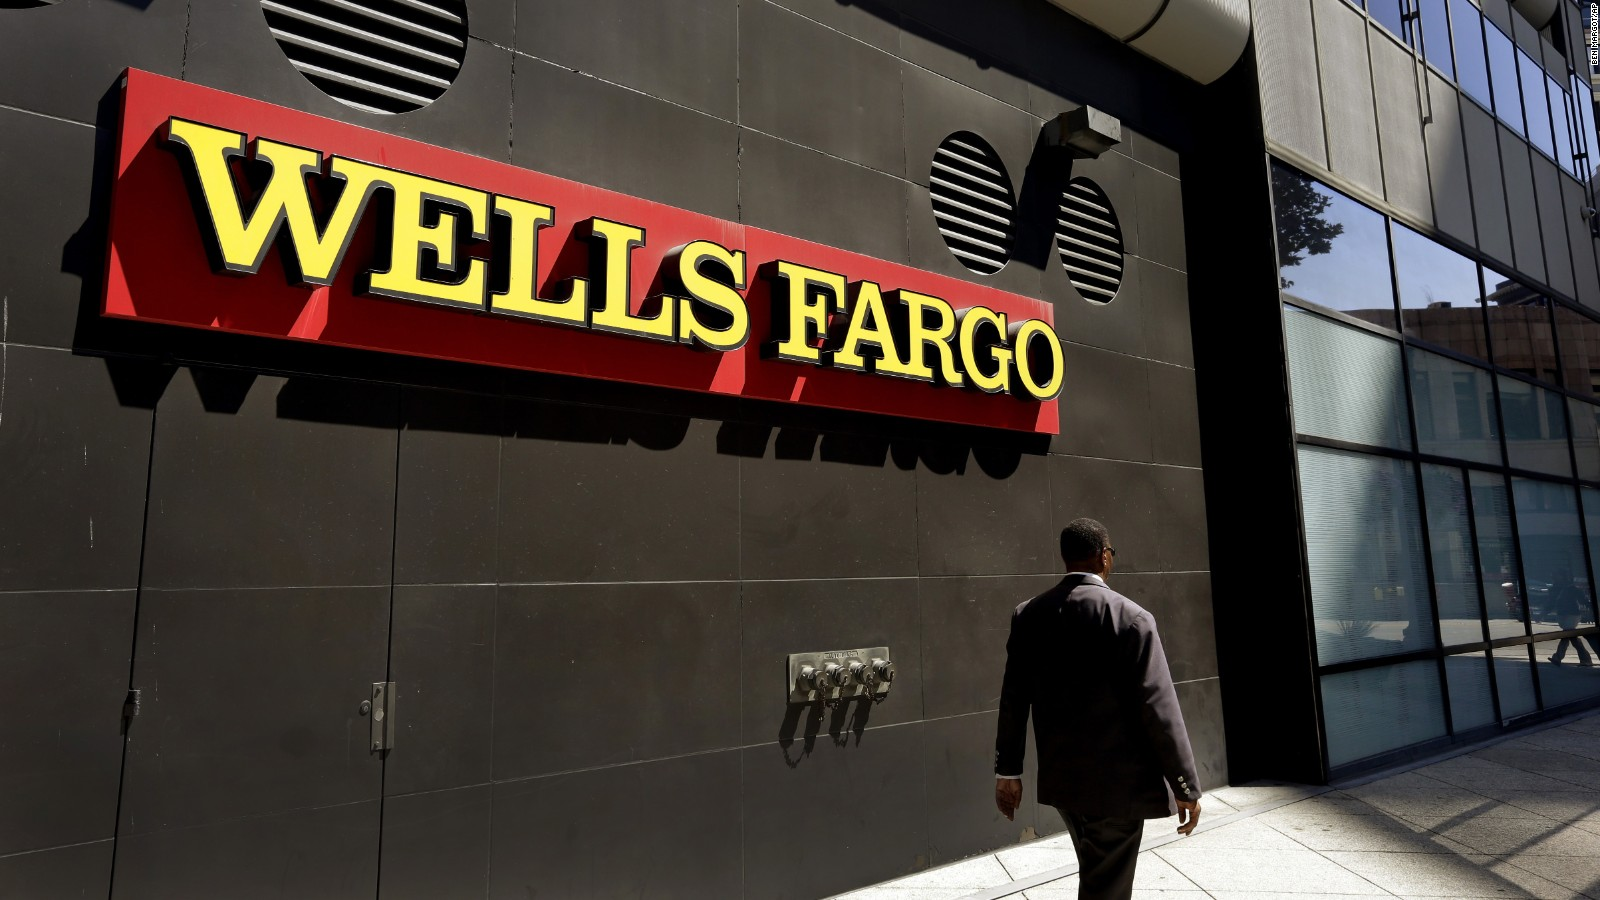 Real reason Wells Fargo scandal should scare you - CNN